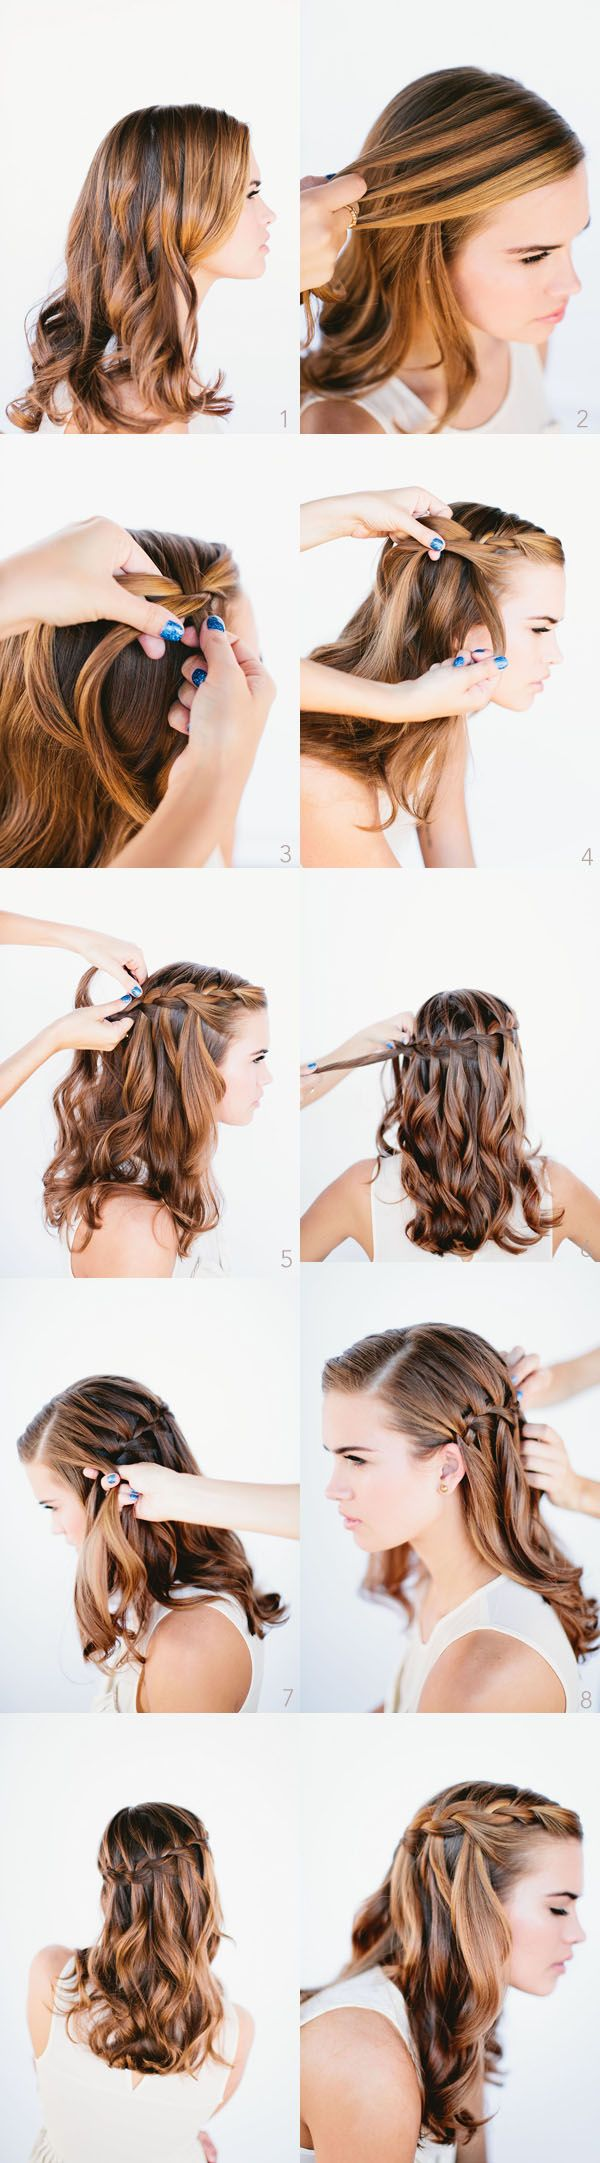 Waterfall Braid Wedding Hairstyles for Long Hair @valeriemousseau